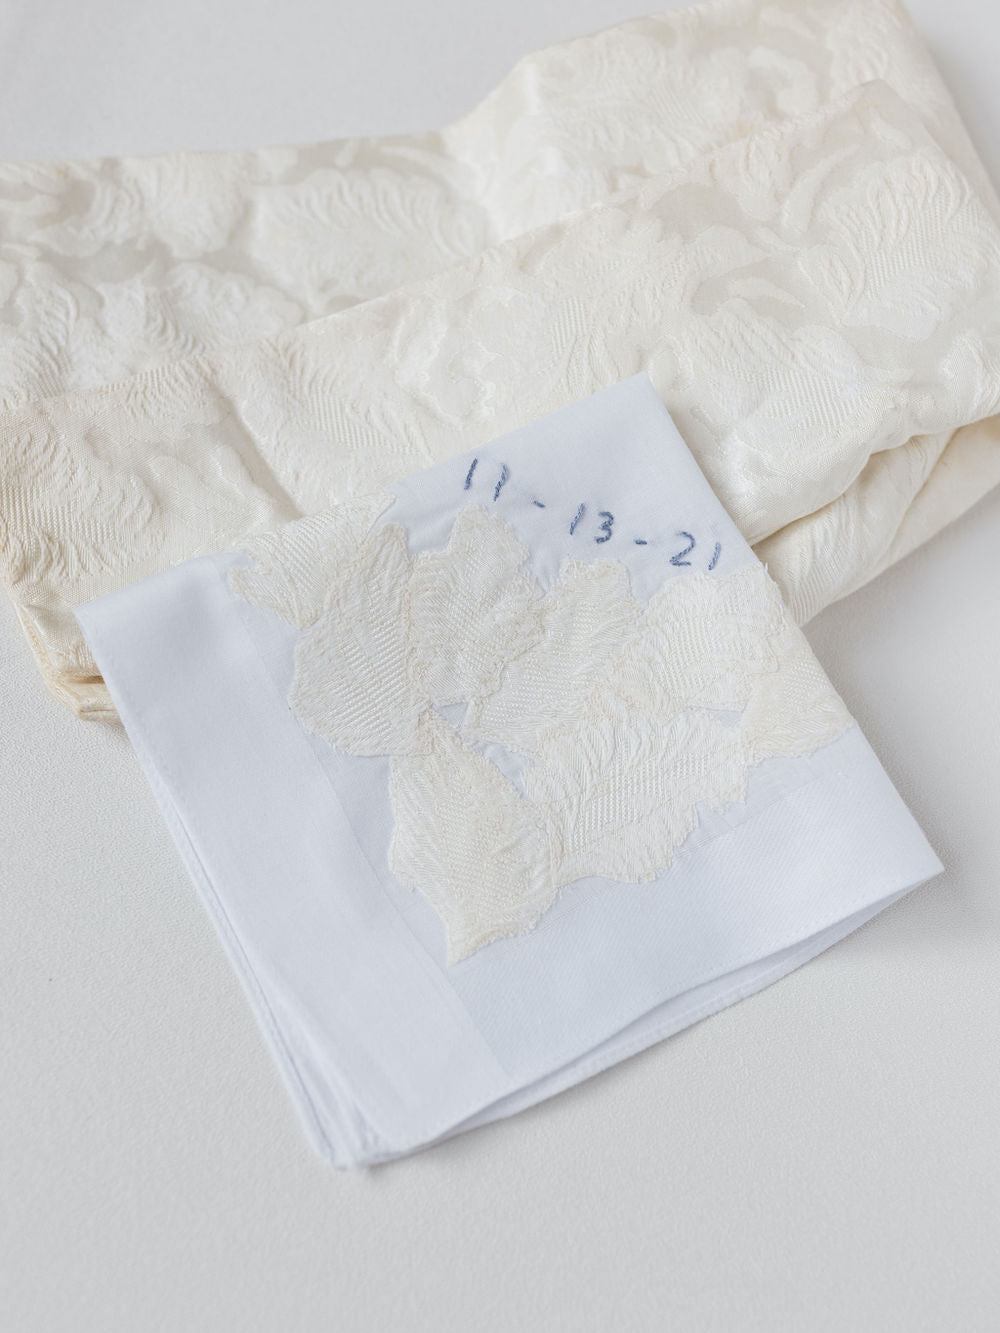 customized wedding handkerchief heirloom handmade with mother's wedding dress sleeves and personalized embroidery by The Garter Girl